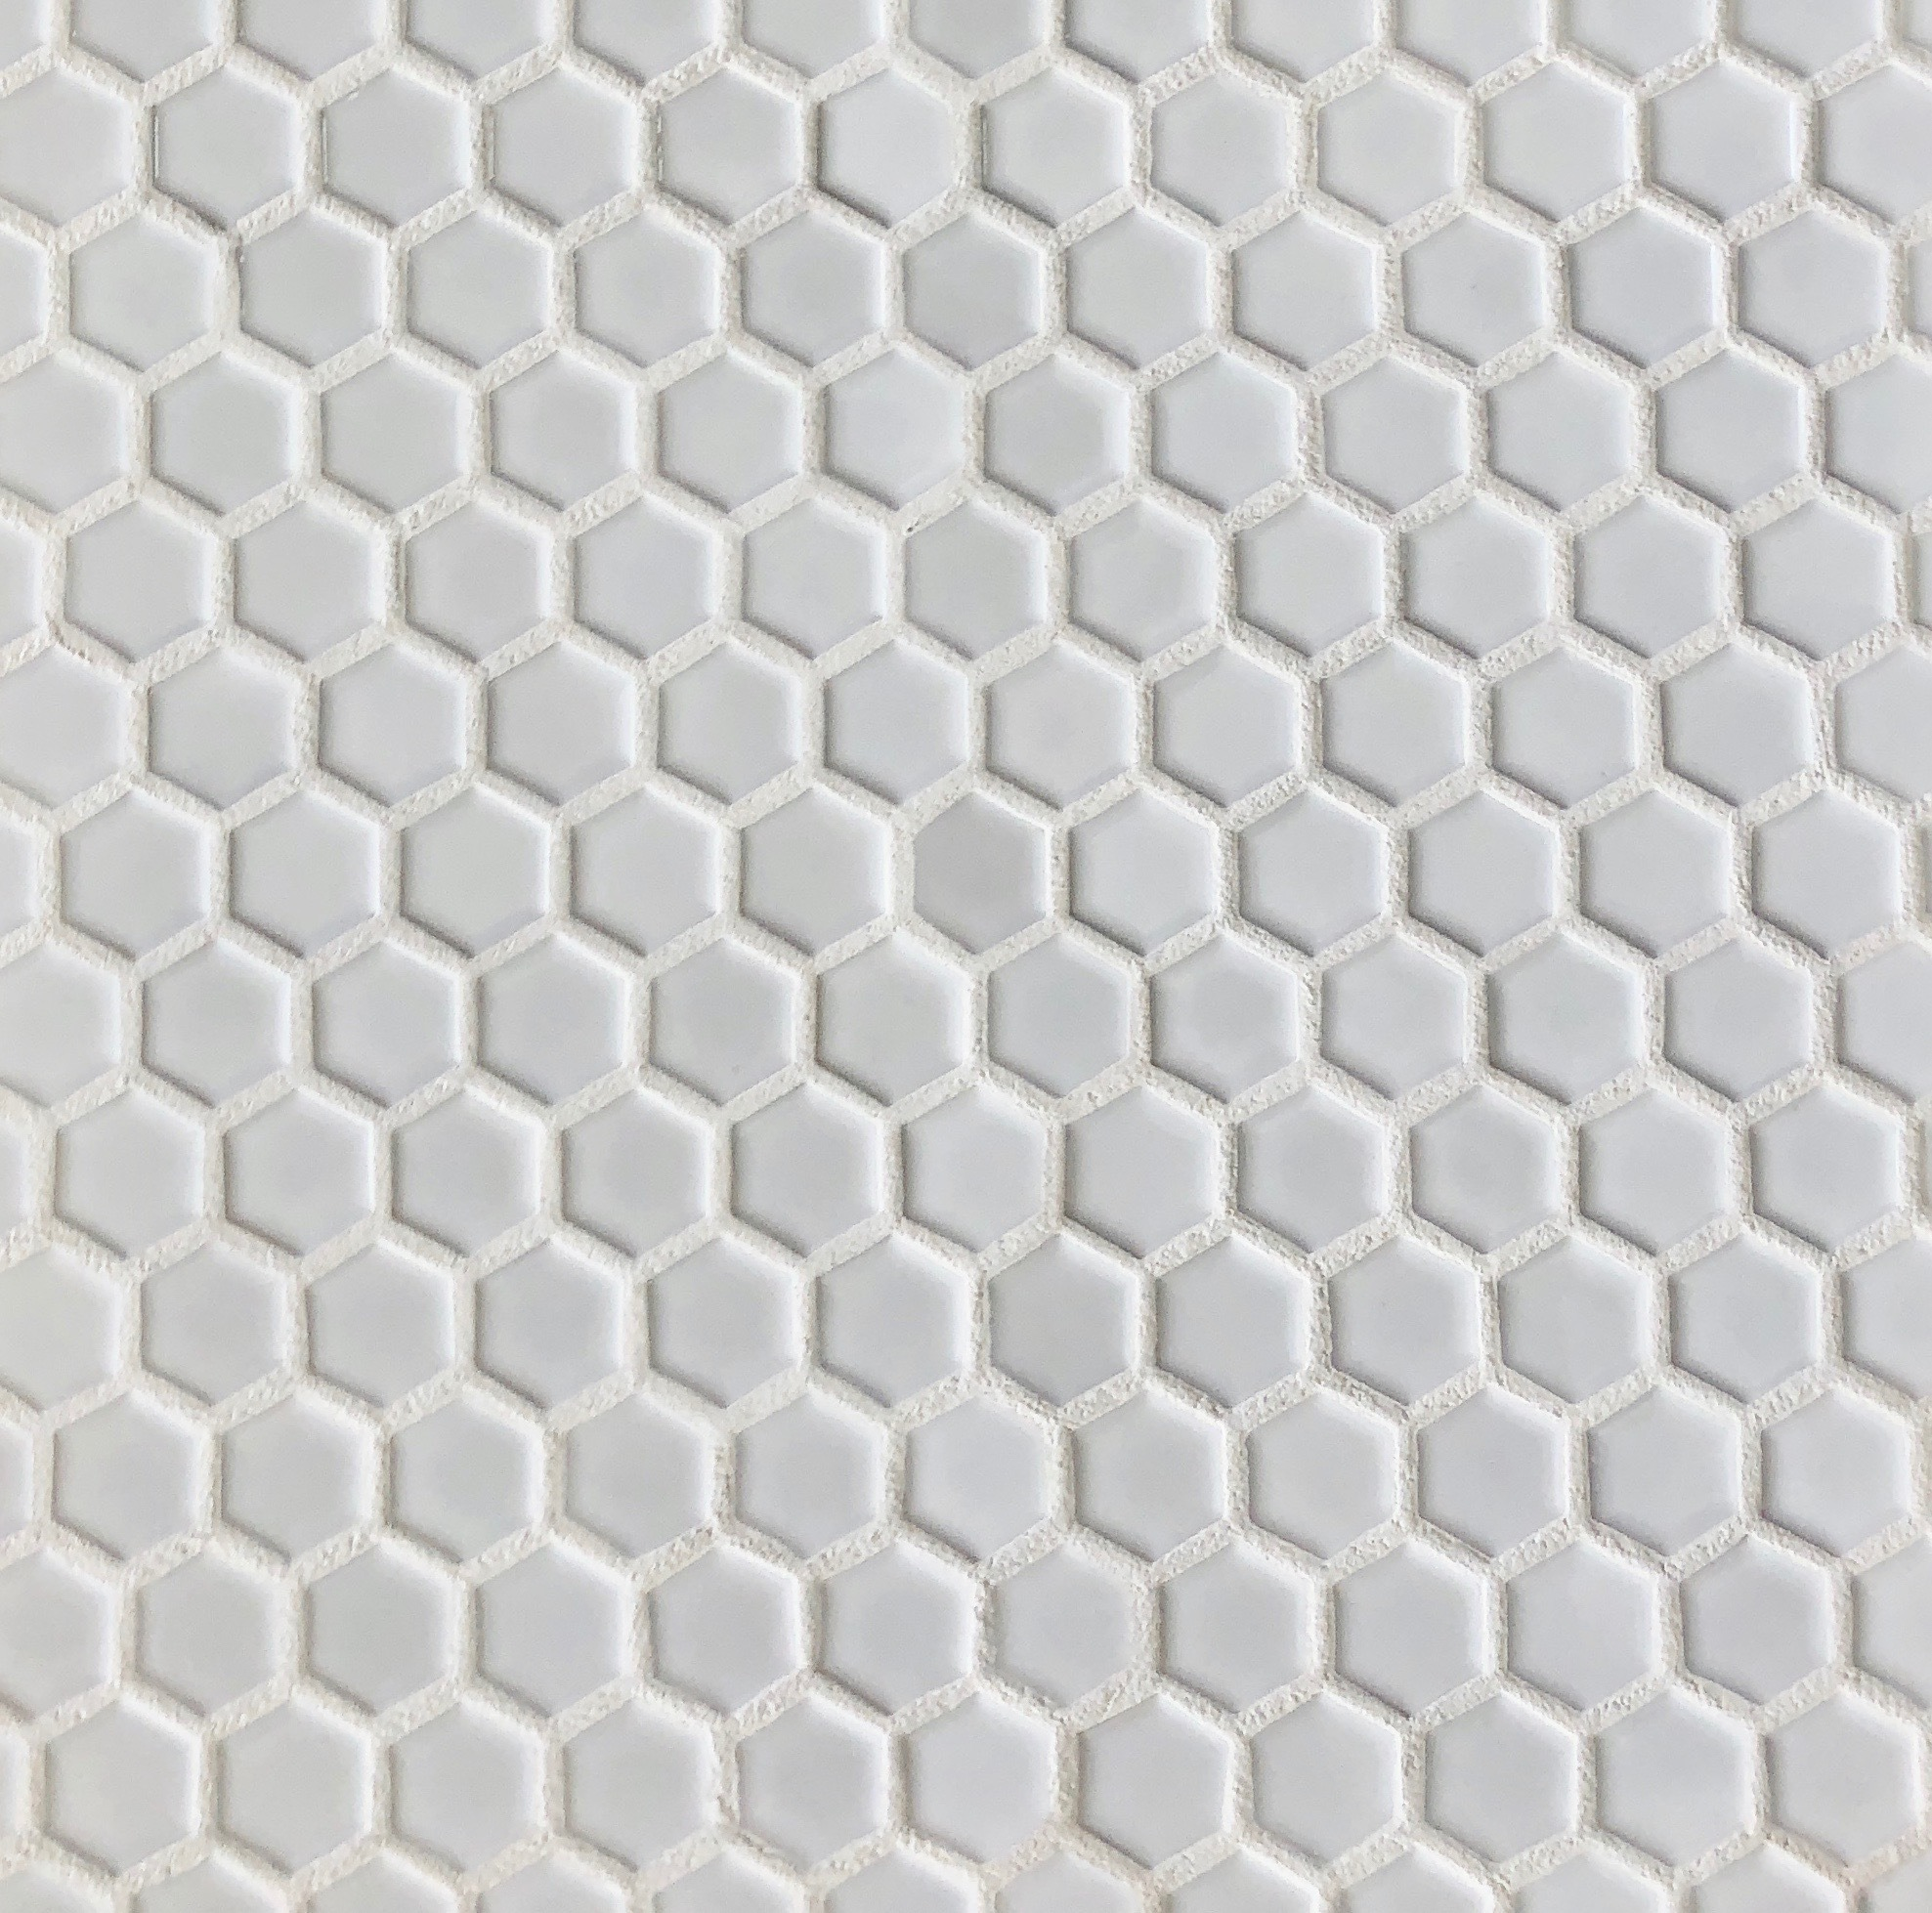 Photo of White Glossy Hexagon 1×1